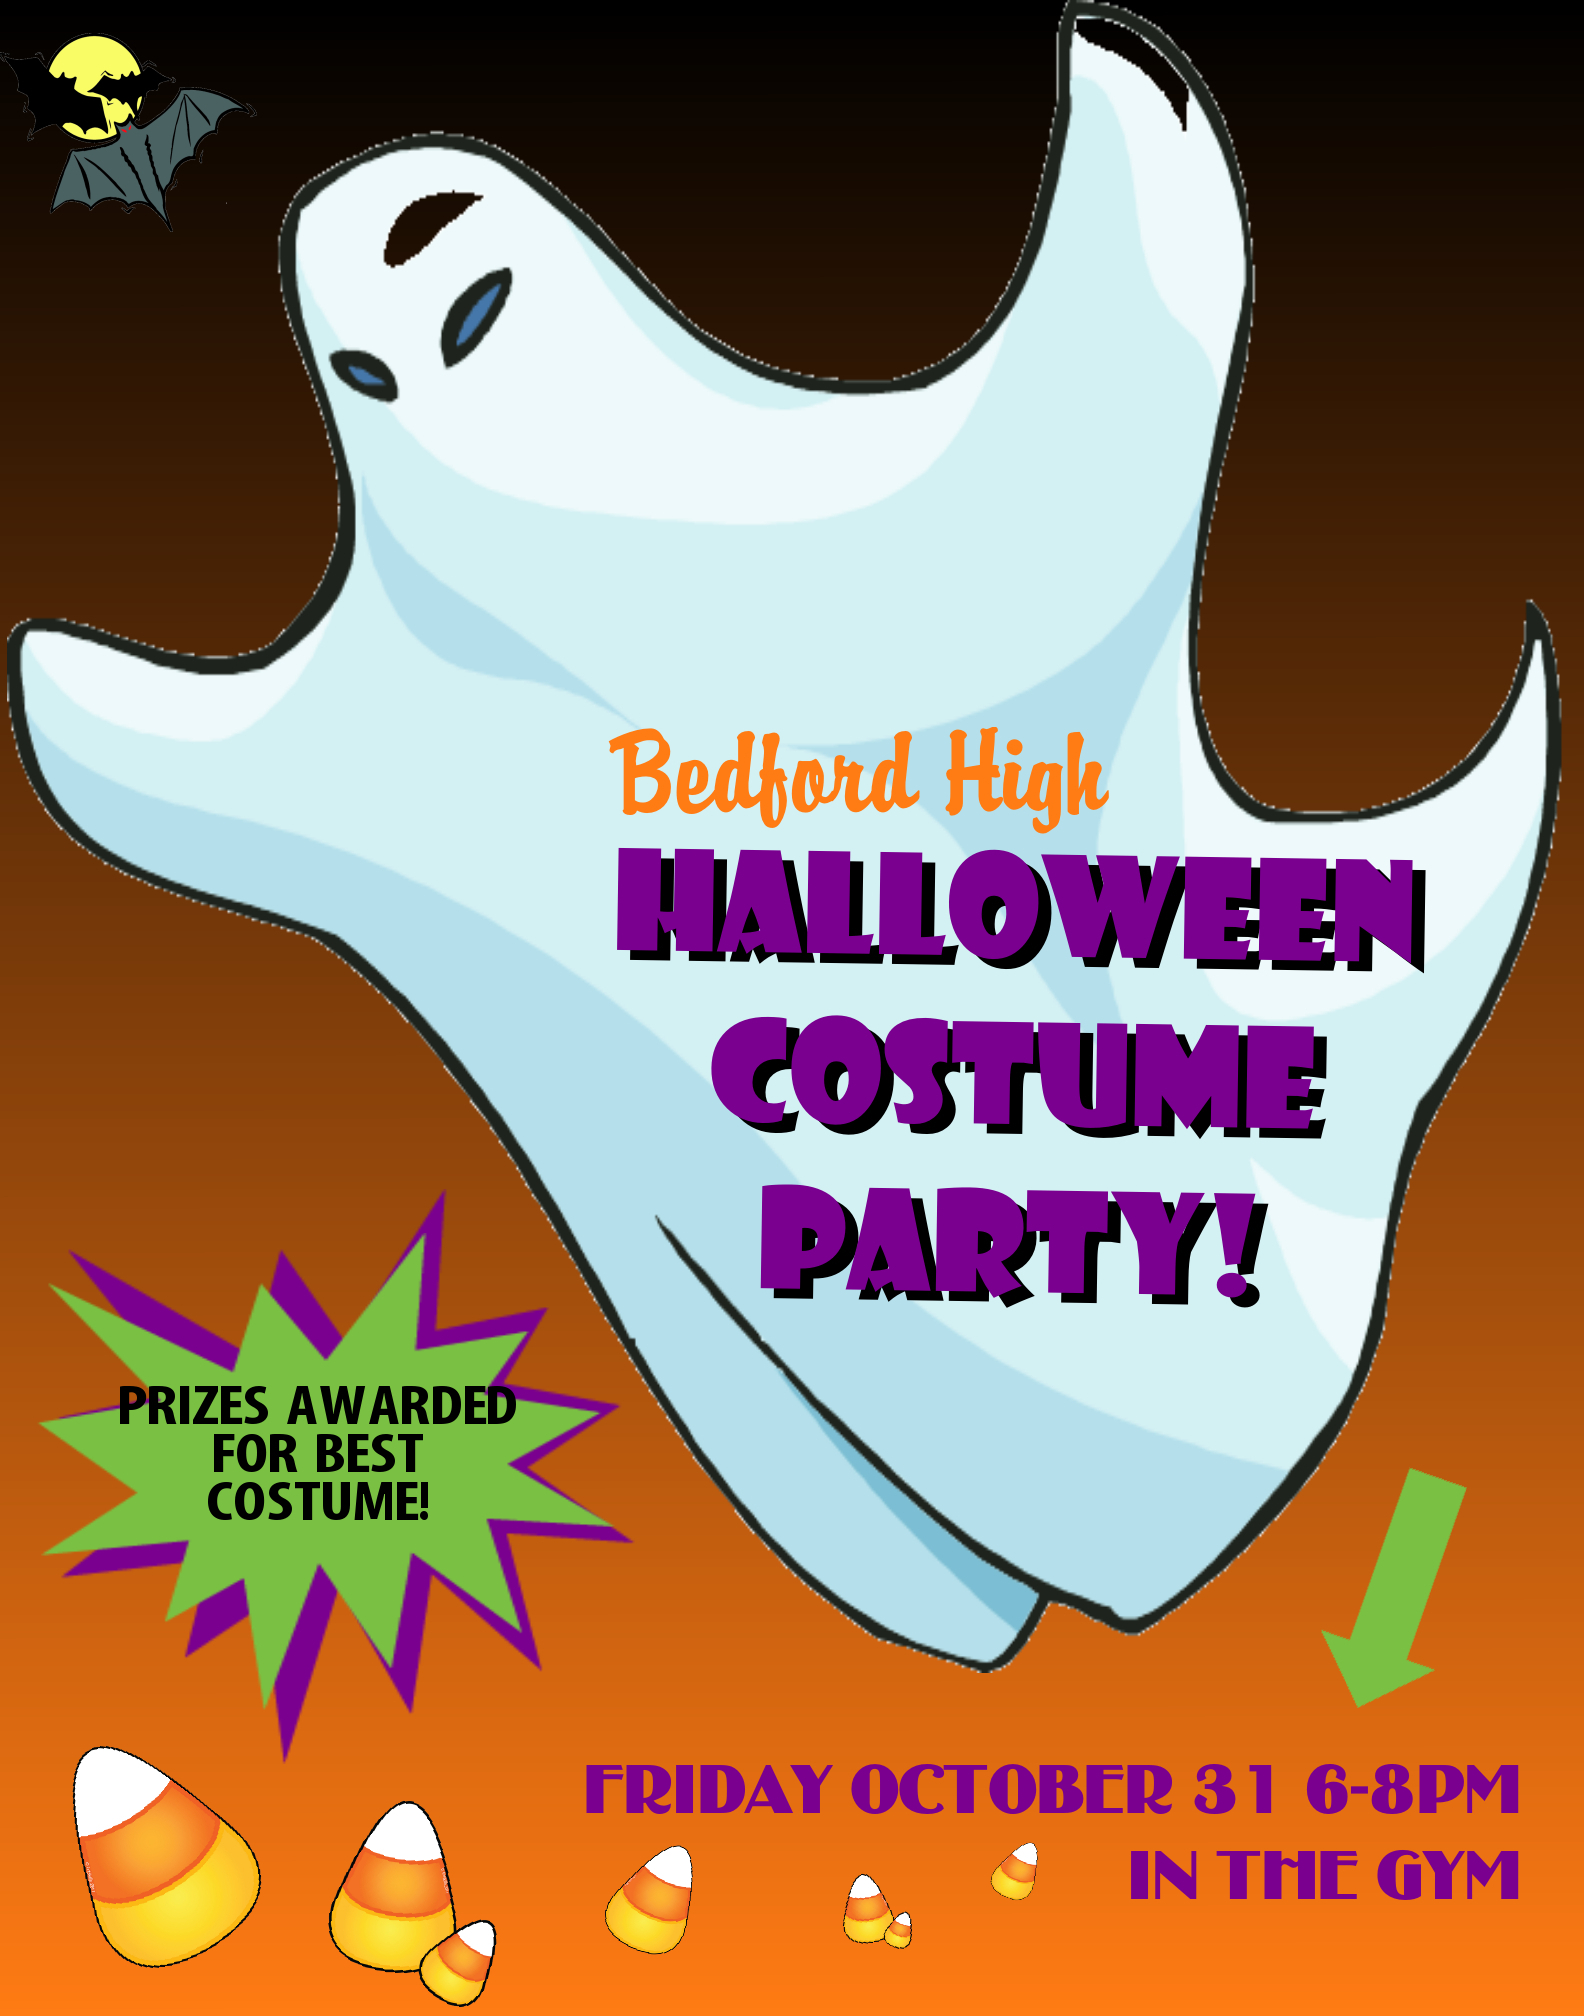 Create A Poster About A Halloween Costume Party